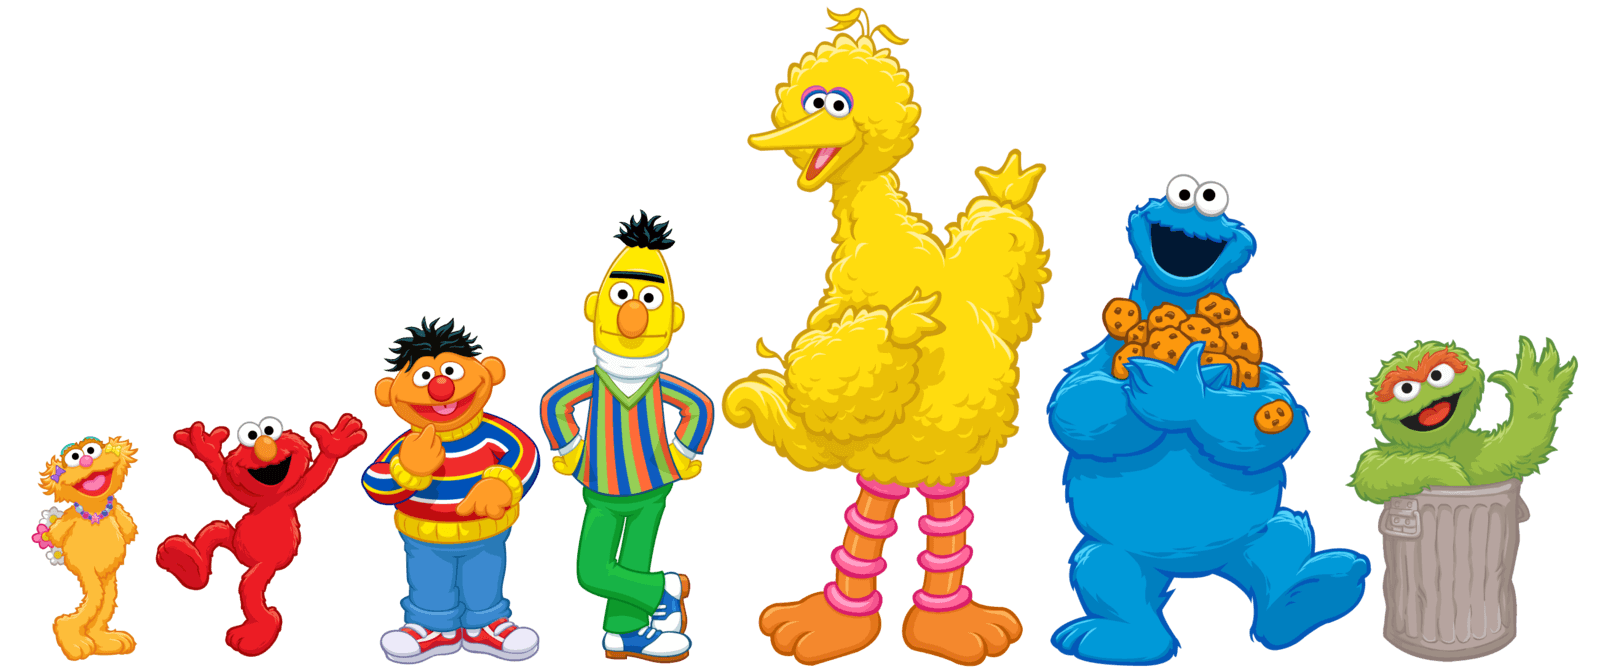 Sesame Street Characters Faces No Background AGc2VxbK5M93Akw98AKgPojW 7Cp8kGYbissSe83 wqjhjdz18QveE 7CcNaNEP6aJfjCxma  7C HlJK8TfepuXoDcQ further Sesame Street Party Favors further Silhouette Geante Animaux De La Jungle Xml 800 7907 moreover Free Hollywood Cliparts moreover 23819 Ridiculousness Chanel And Steelo. on oscar cut outs